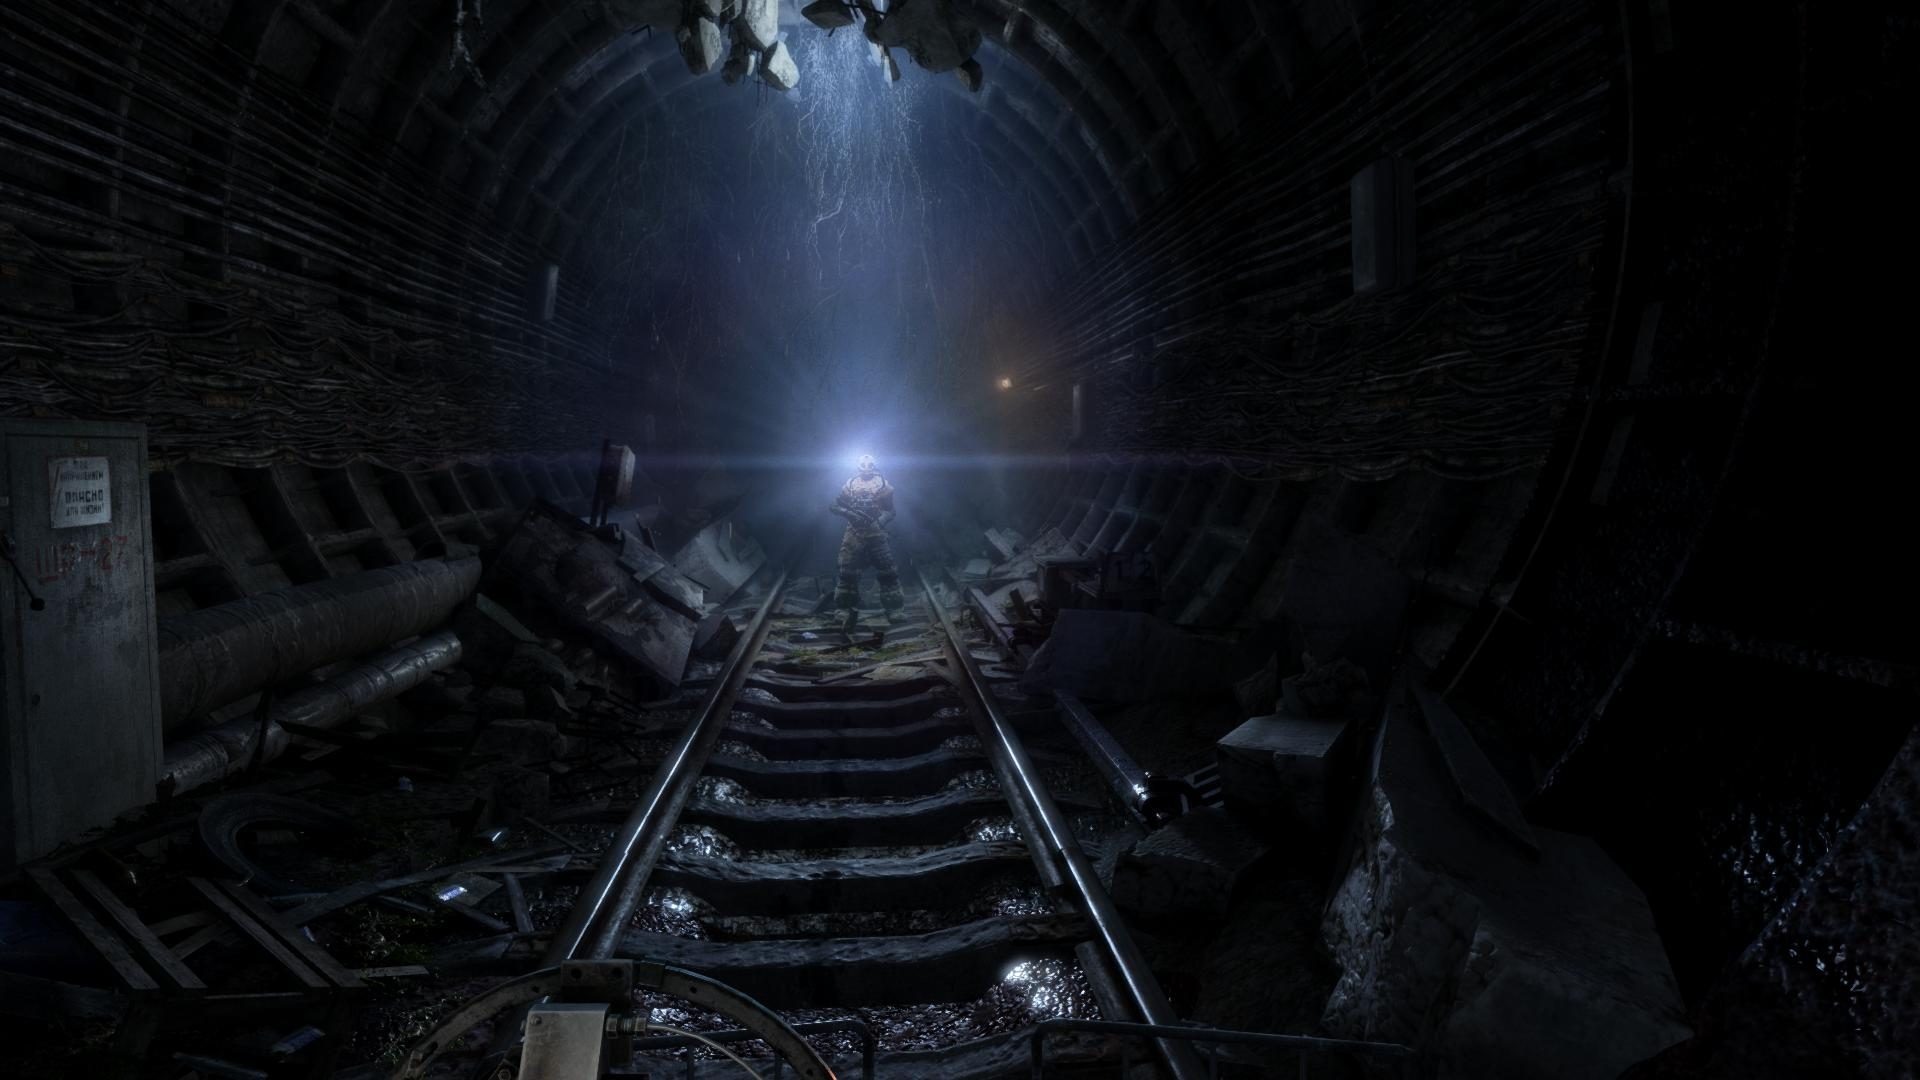 Wallpapers Fond D Ecran Pour Metro Last Light Pc Ps3